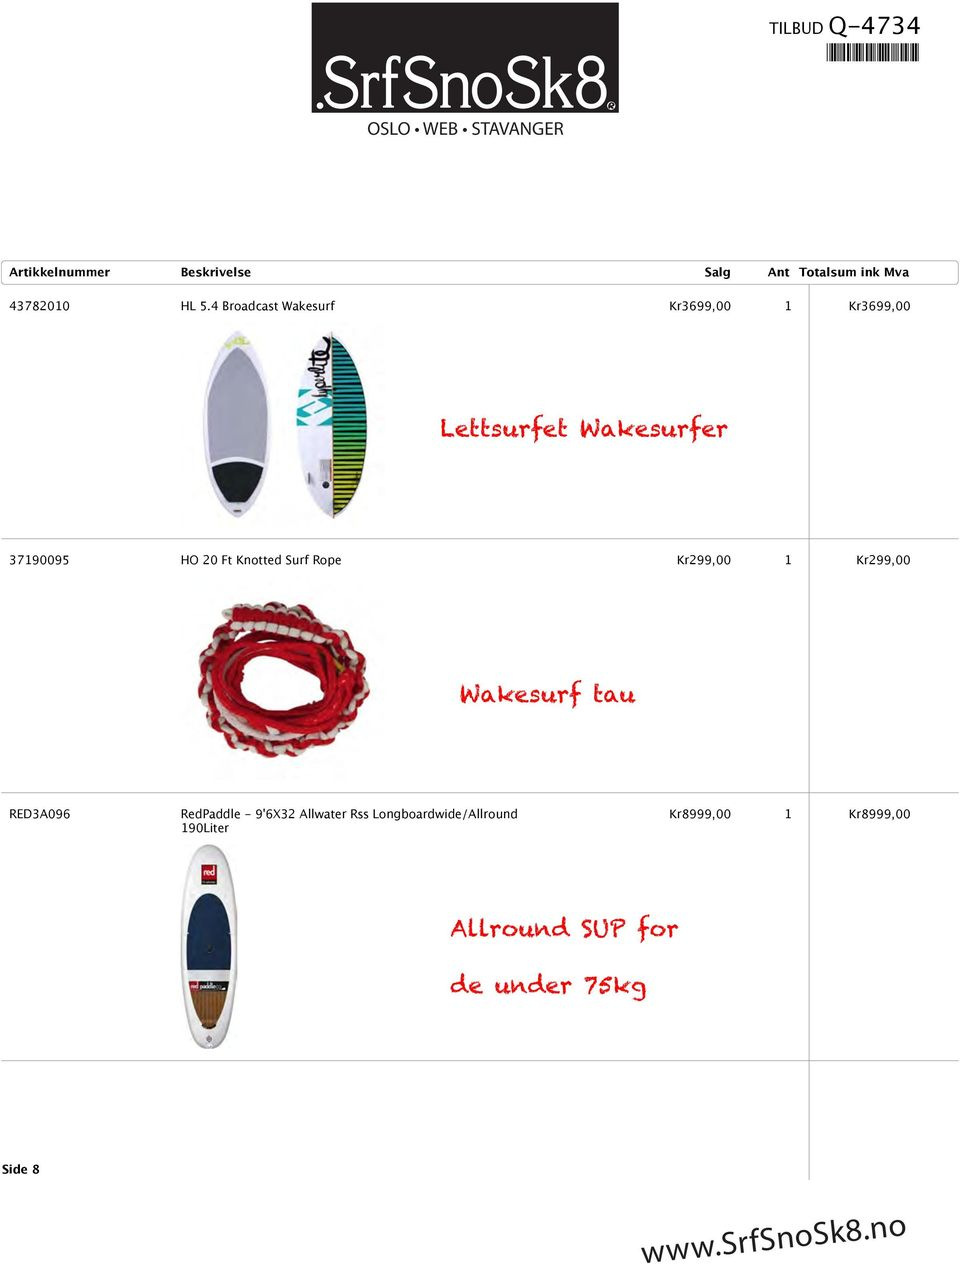 HO 20 Ft Knotted Surf Rope Kr299,00 1 Kr299,00